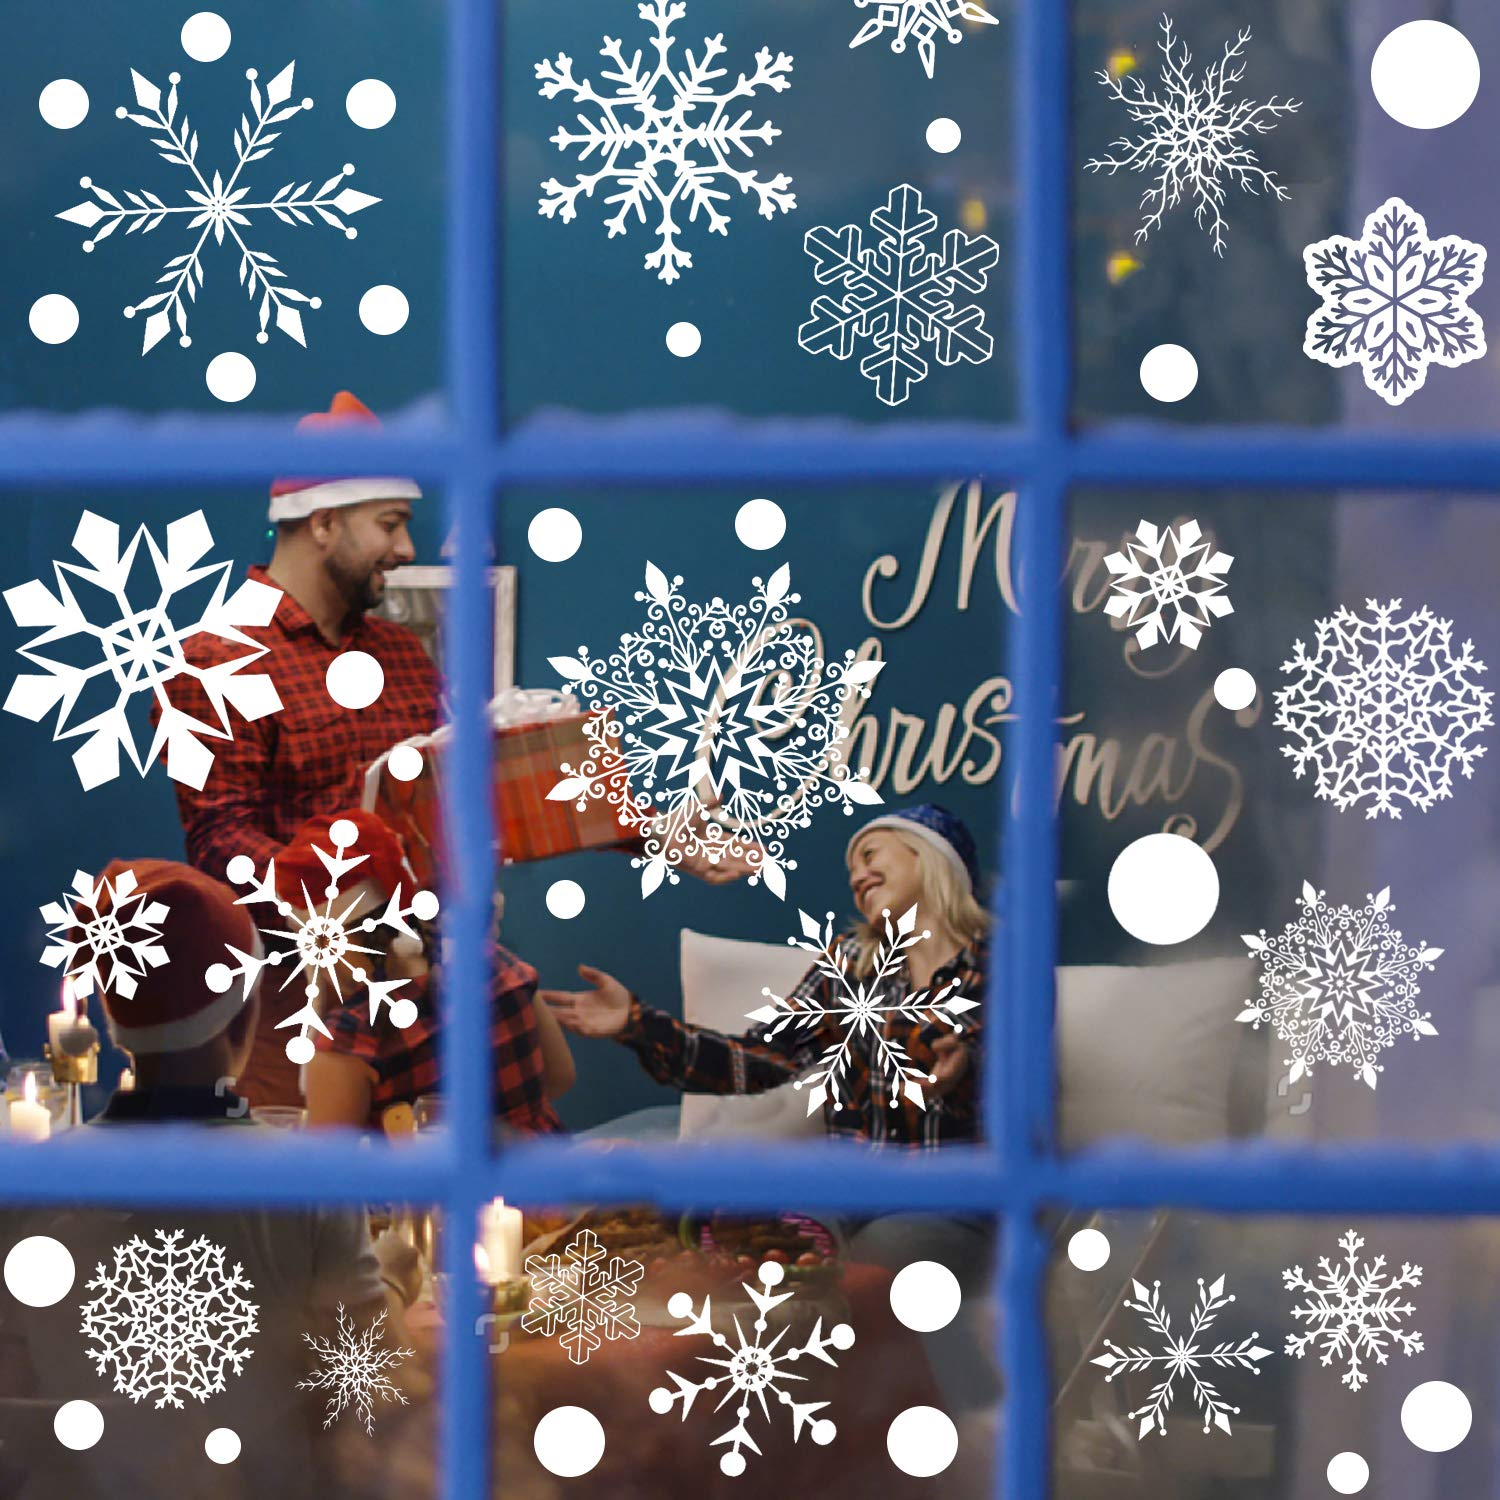 320 PC 12 Sheet R HORSE Christmas Decoration Snowflakes Window Clings PVC Winter Decal Stickers for Christmas Winter Ornaments Xmas Party Stickers Snowflakes//Baubles//bells//trees//reindeer Included